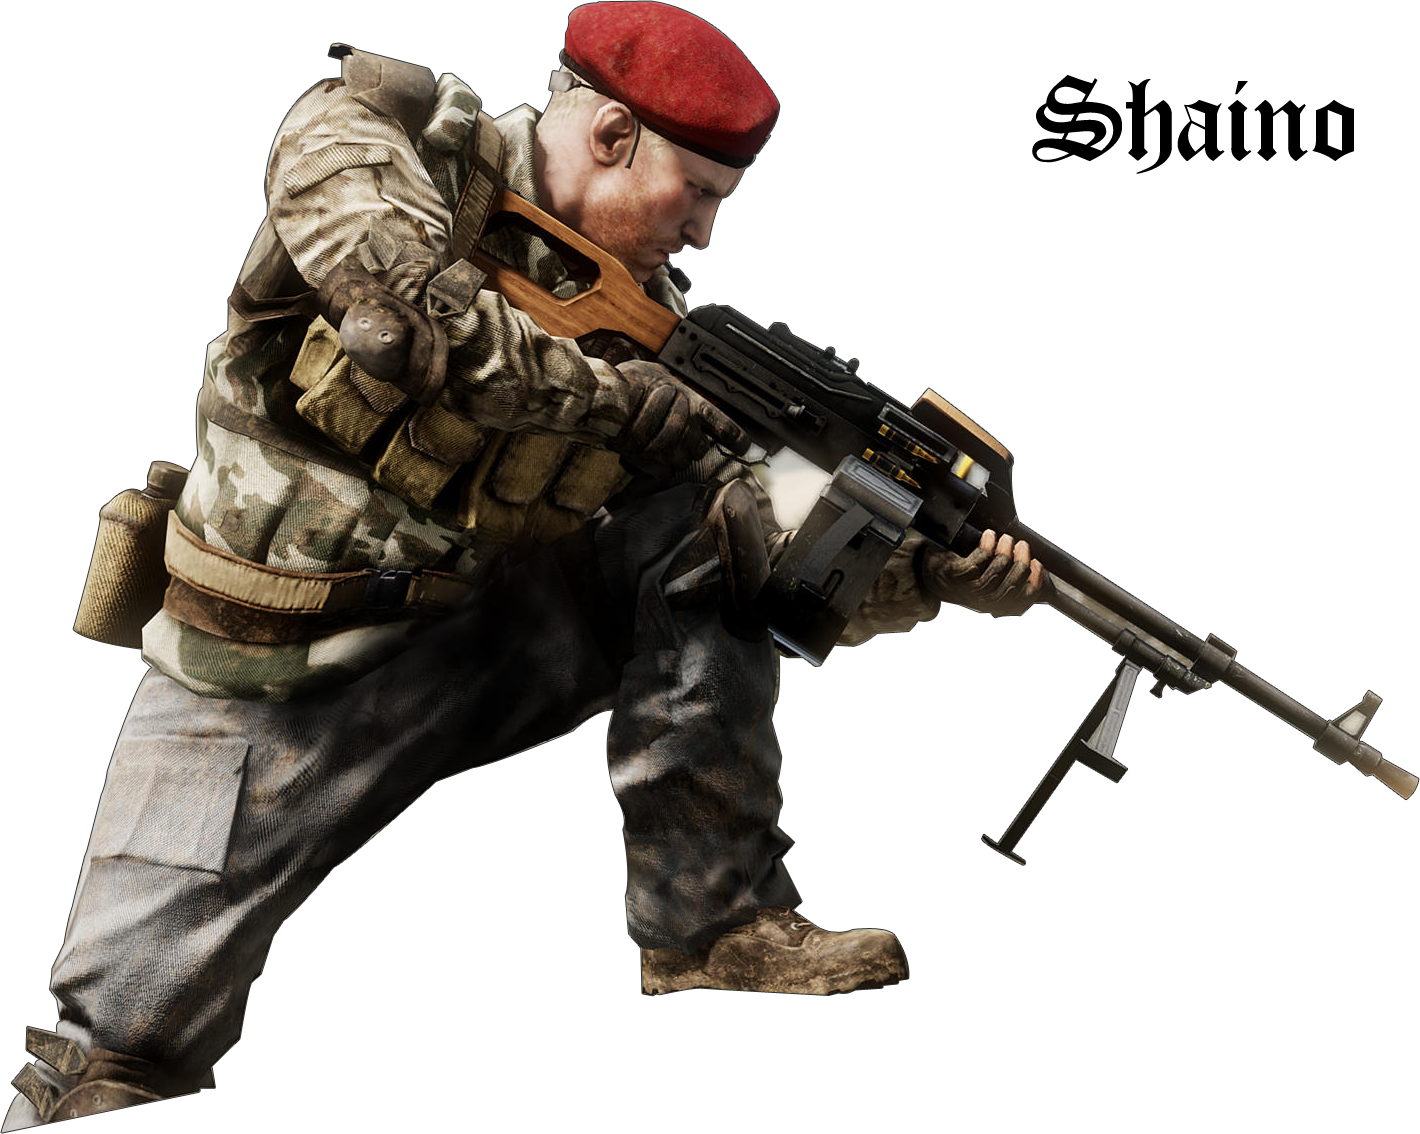 Army PNG Images Transparent Free Download.